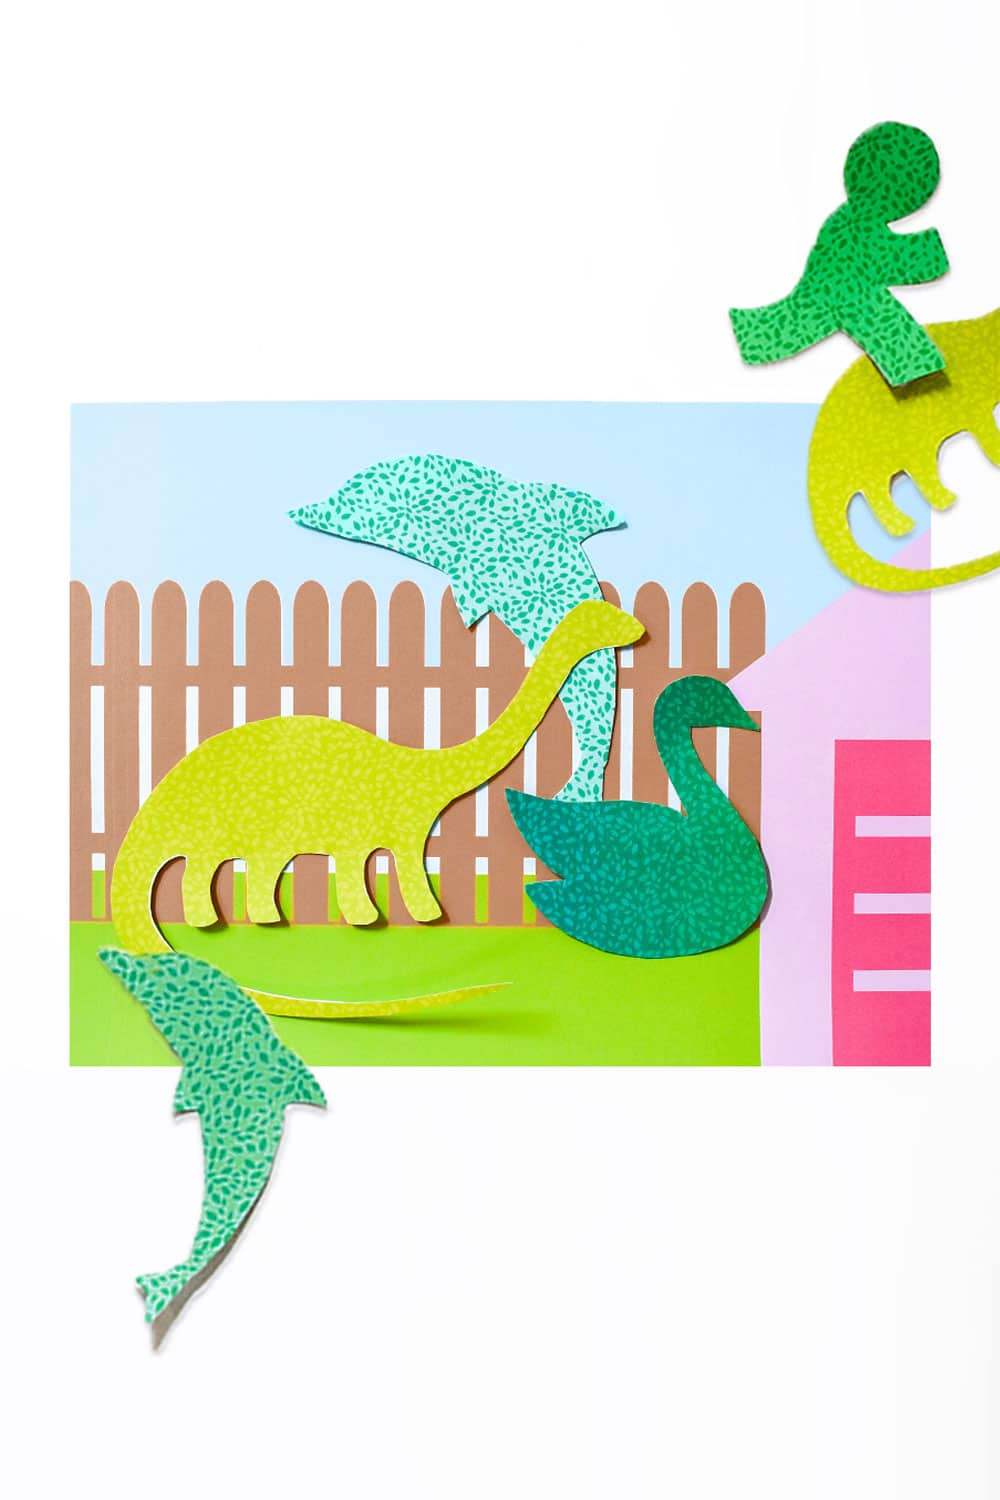 Make your own topiary art in the style of Edward Scissorhands using cookie cutters and a free printable - a fun paper craft for kids! | via barley & birch